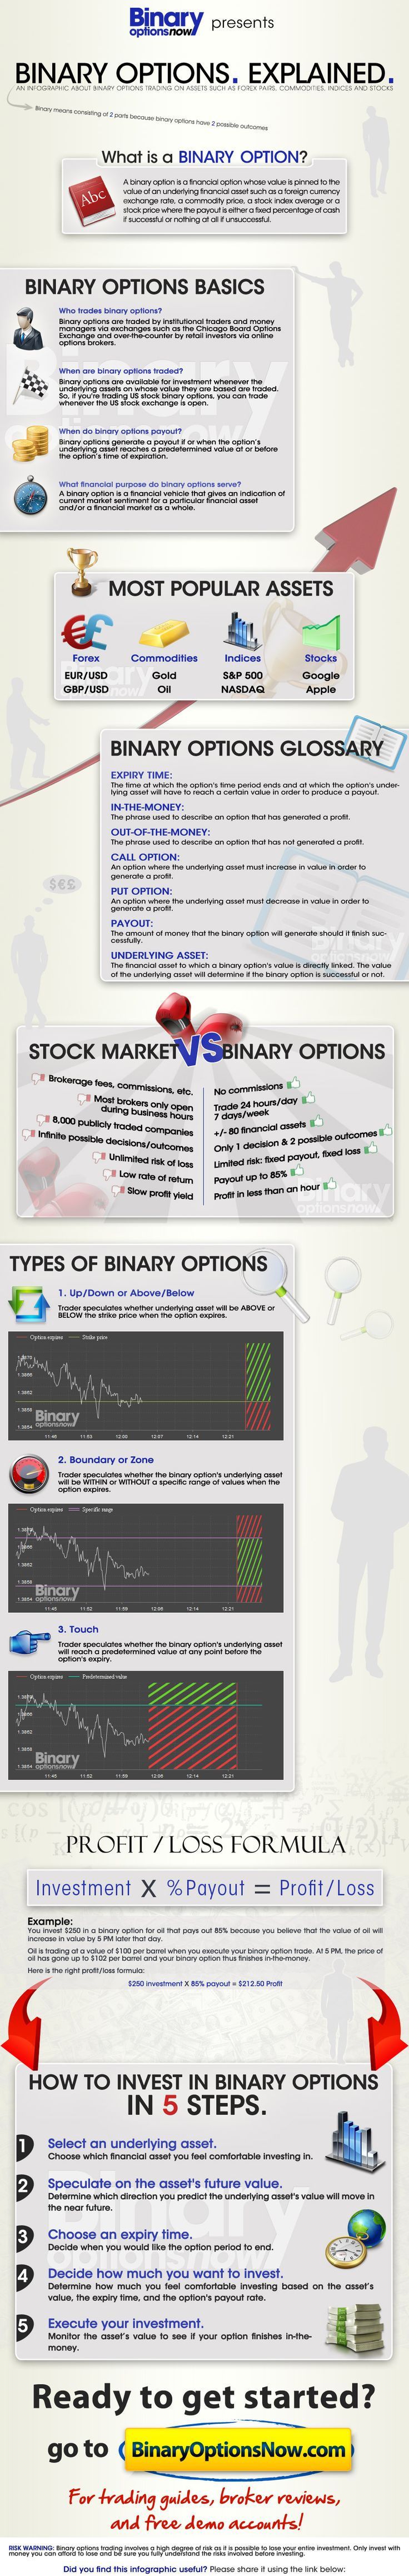 professional binary options trader